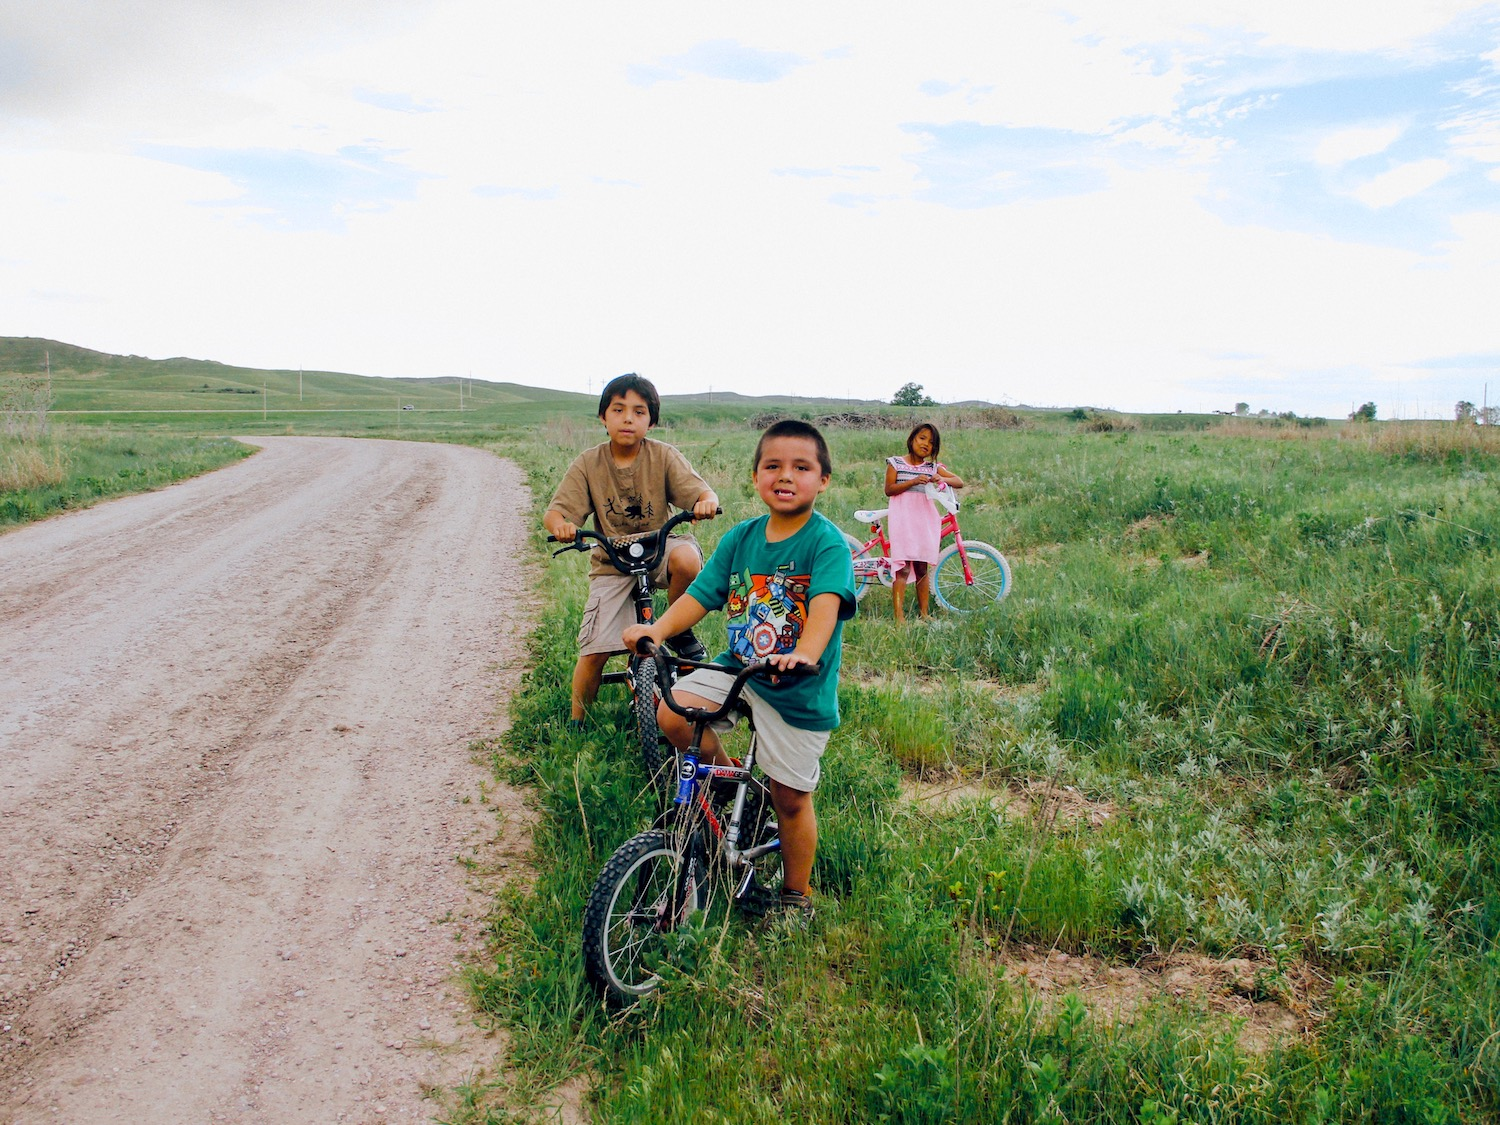 Editorial: Drugs and alcohol are ruining our way of life in Lakota country